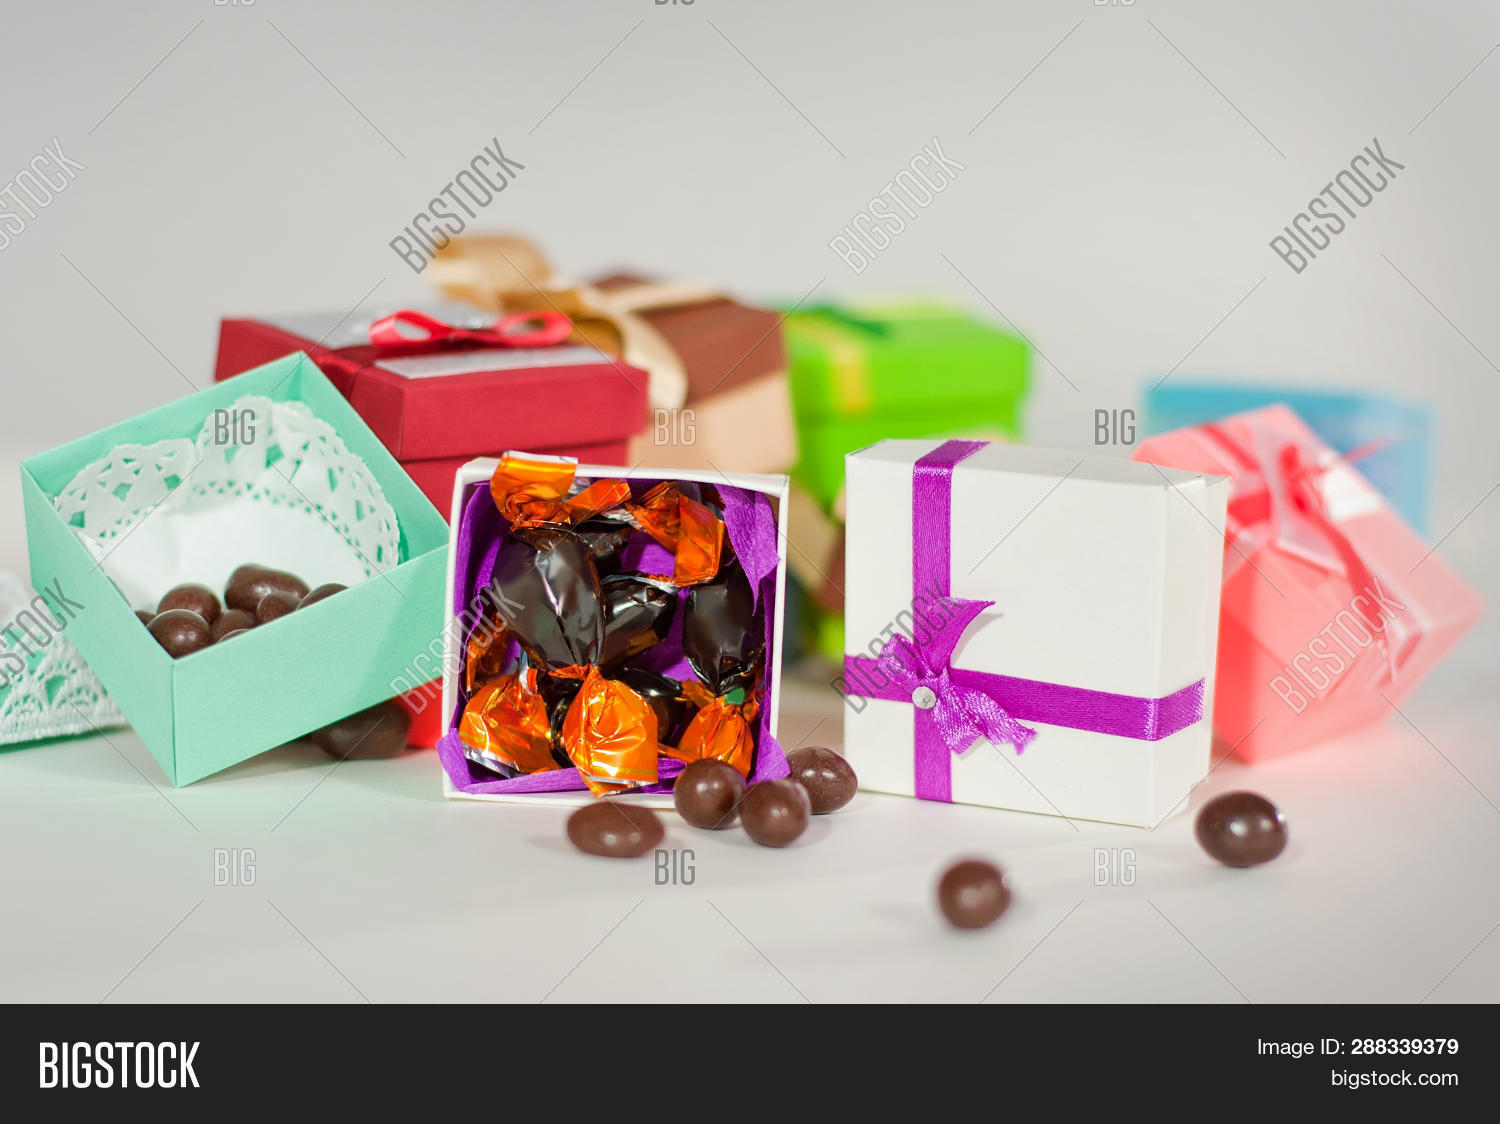 Handmade Paper Boxes Image Photo Free Trial Bigstock